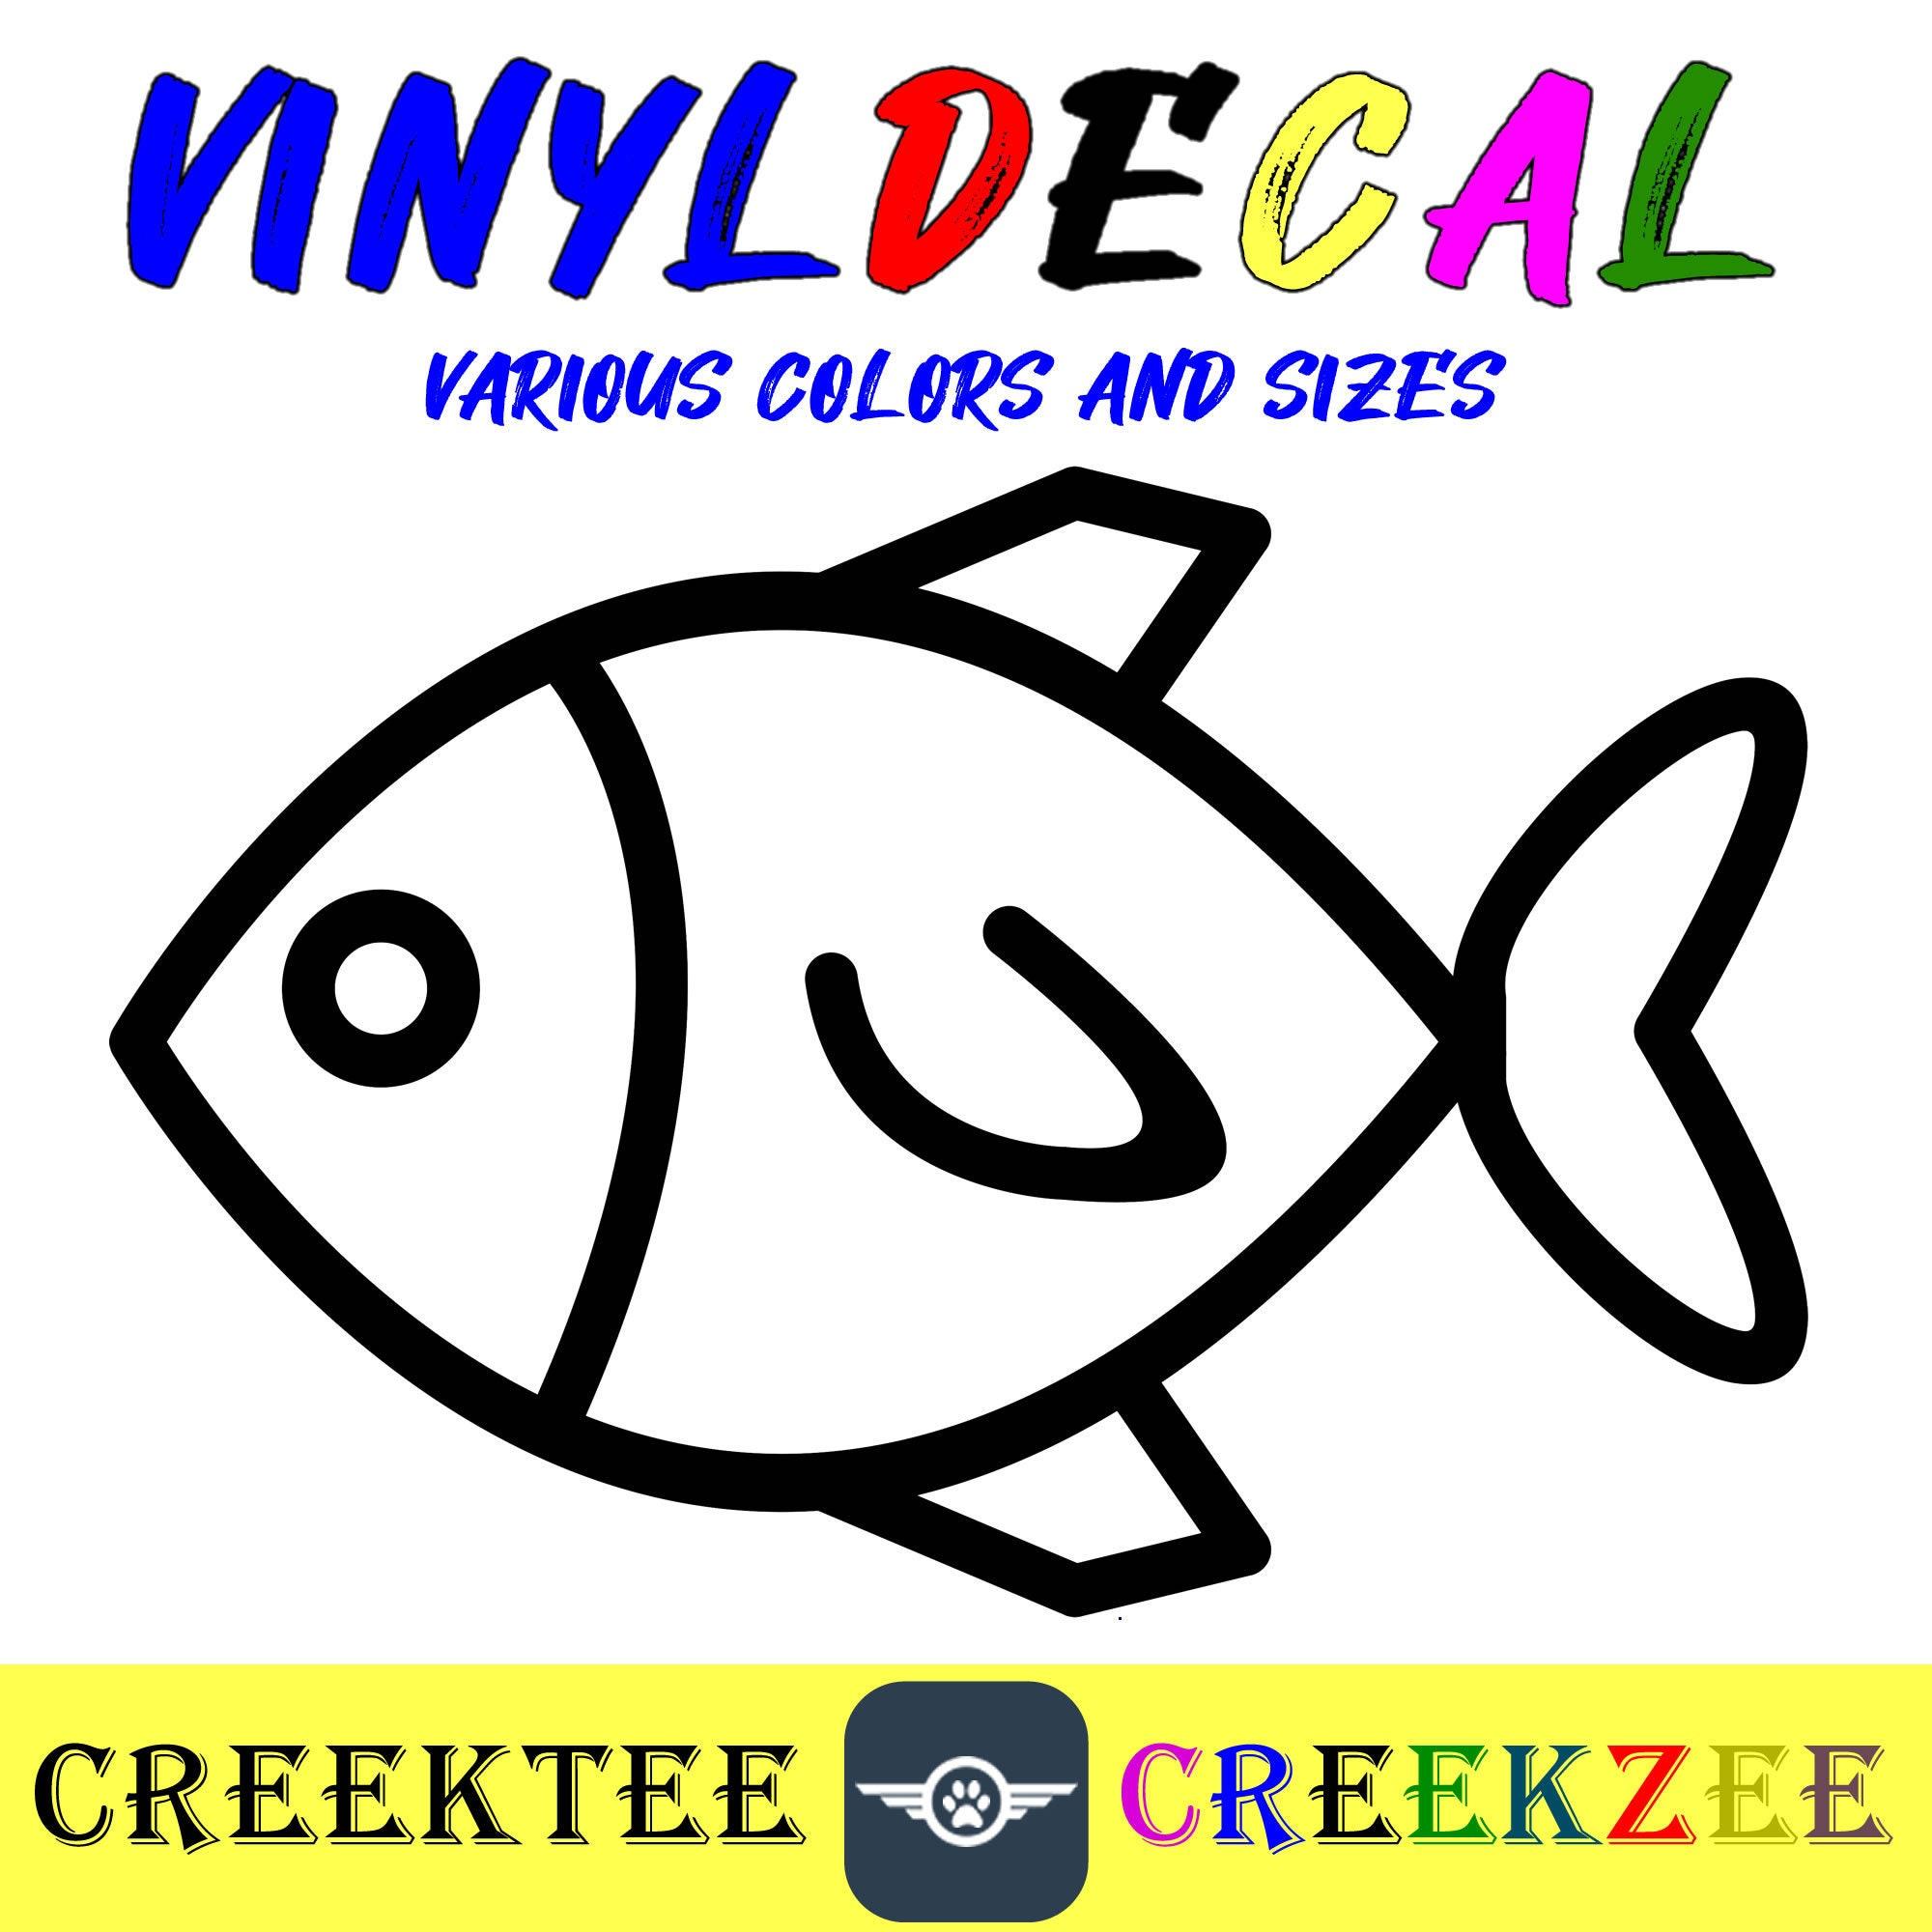 CAD$8.69 - Fish vinyl decal in various sizes or colors